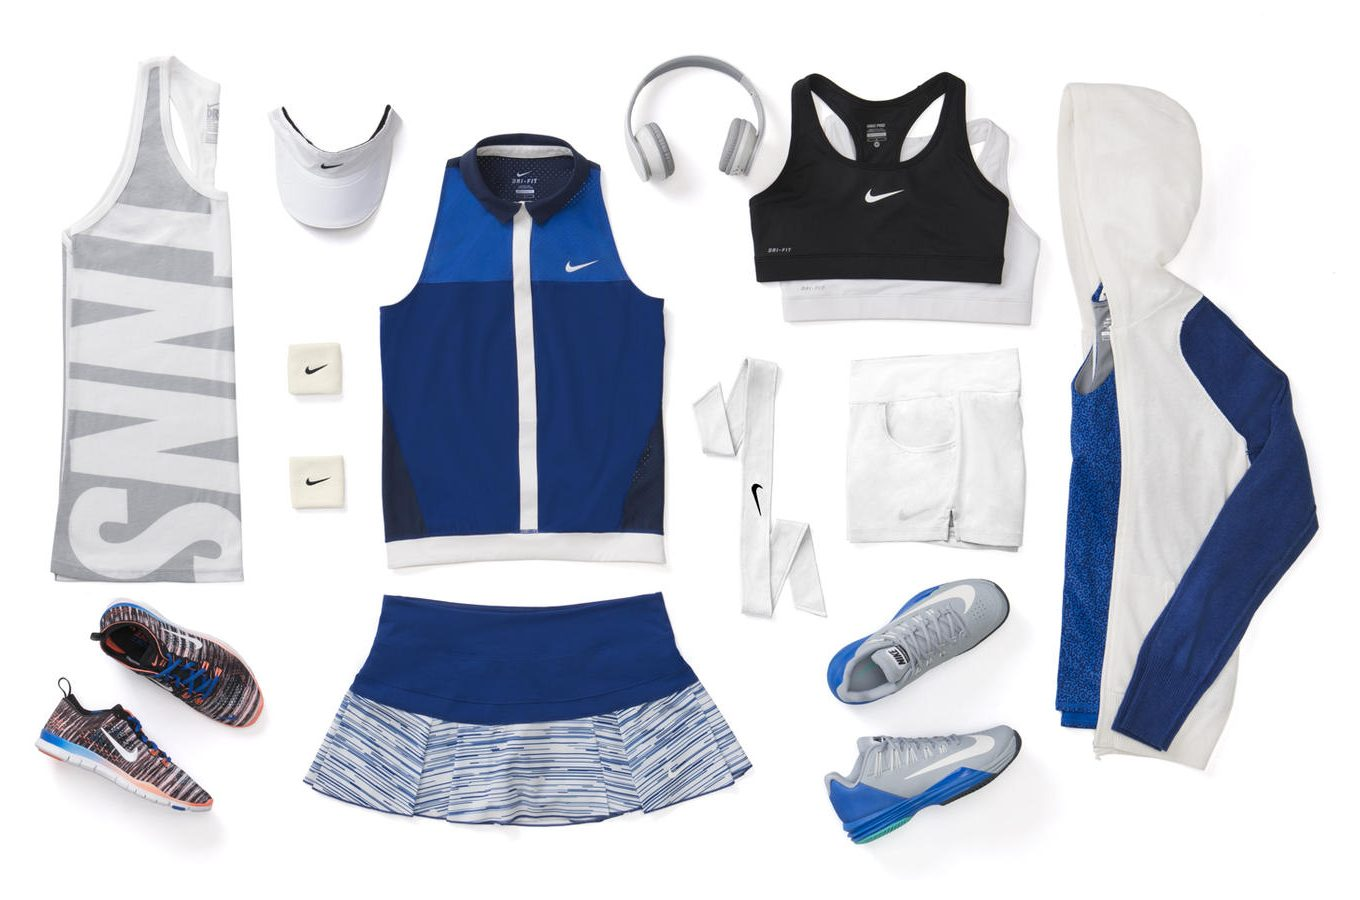 Stand Out in Nike's New Fall Line for Women!